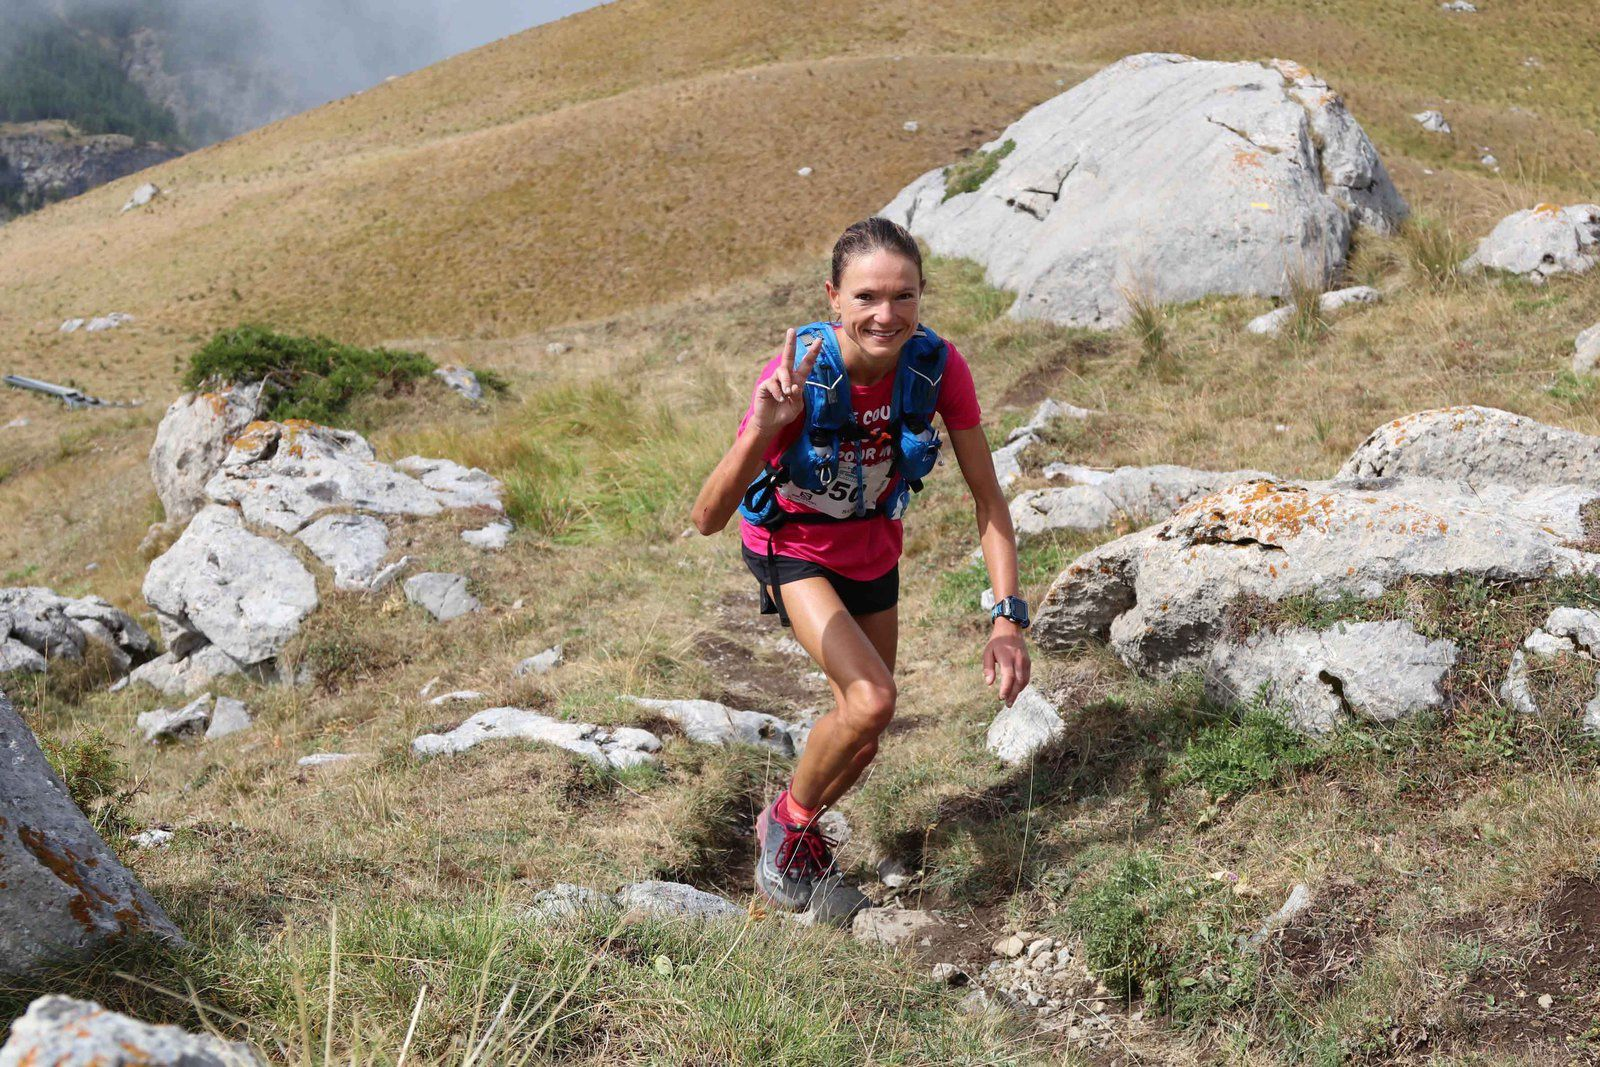 Juliet Champion, Mathieu Martinez et Romain Wyndaele, vainqueurs du Salomon Over the Mountain Running Challenge 2017